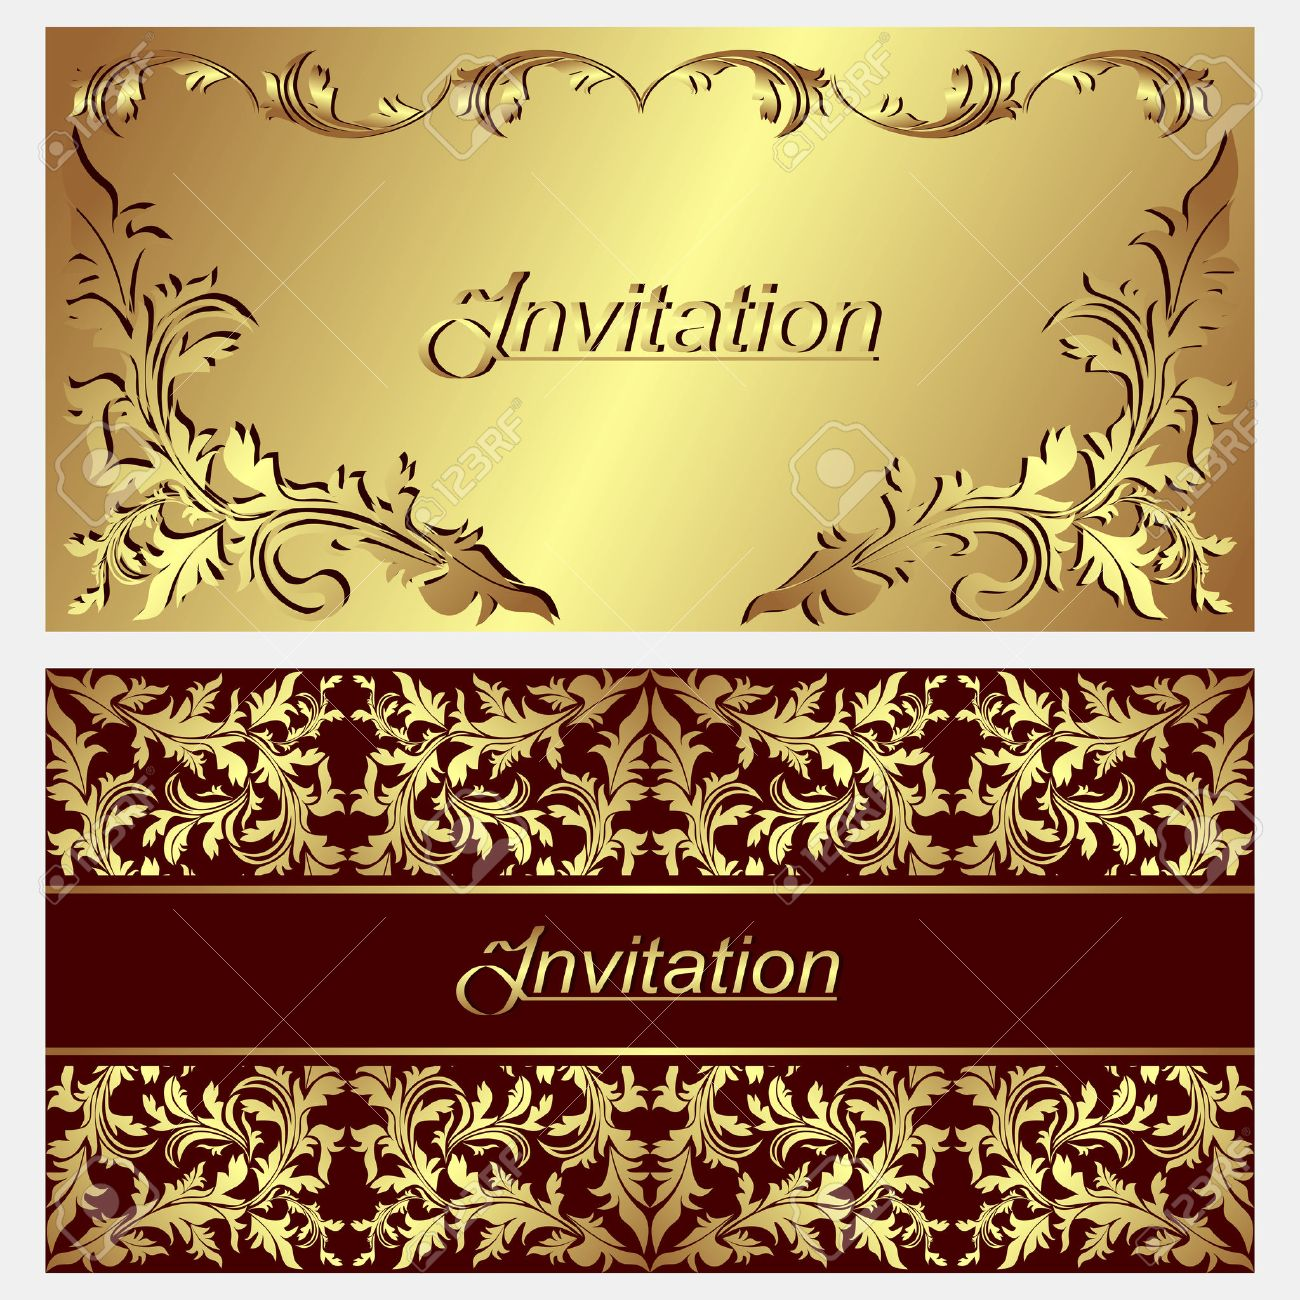 Luxurious invitation Cards with golden ornamental Borders - 22956506